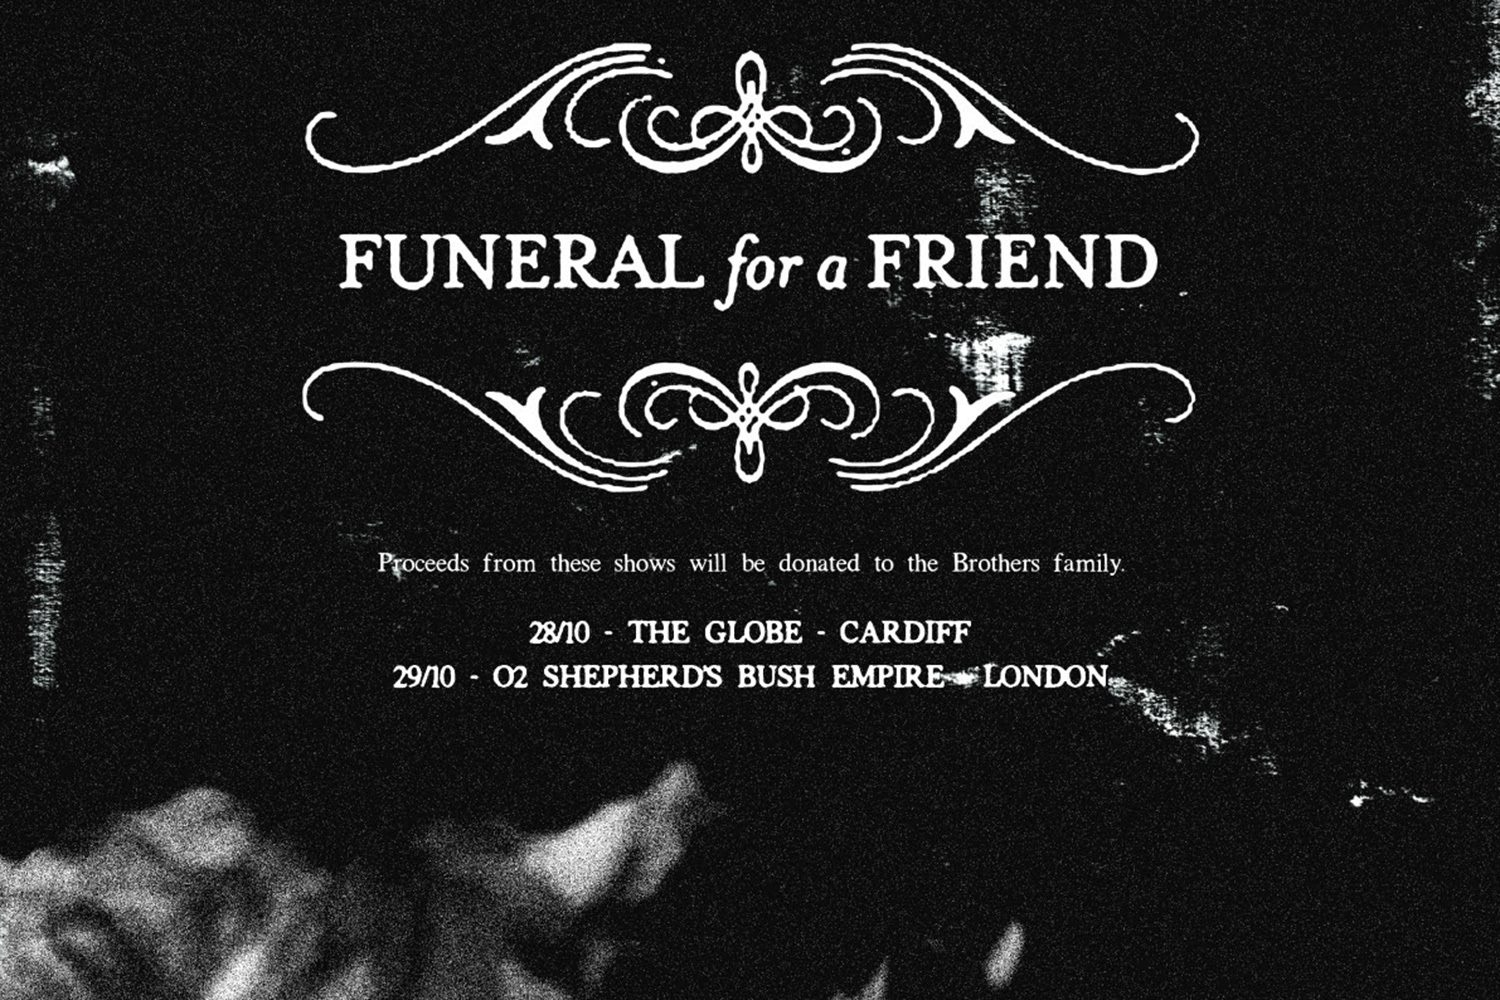 Funeral For A Friend have announced two benefit shows for a unwell pal and his family